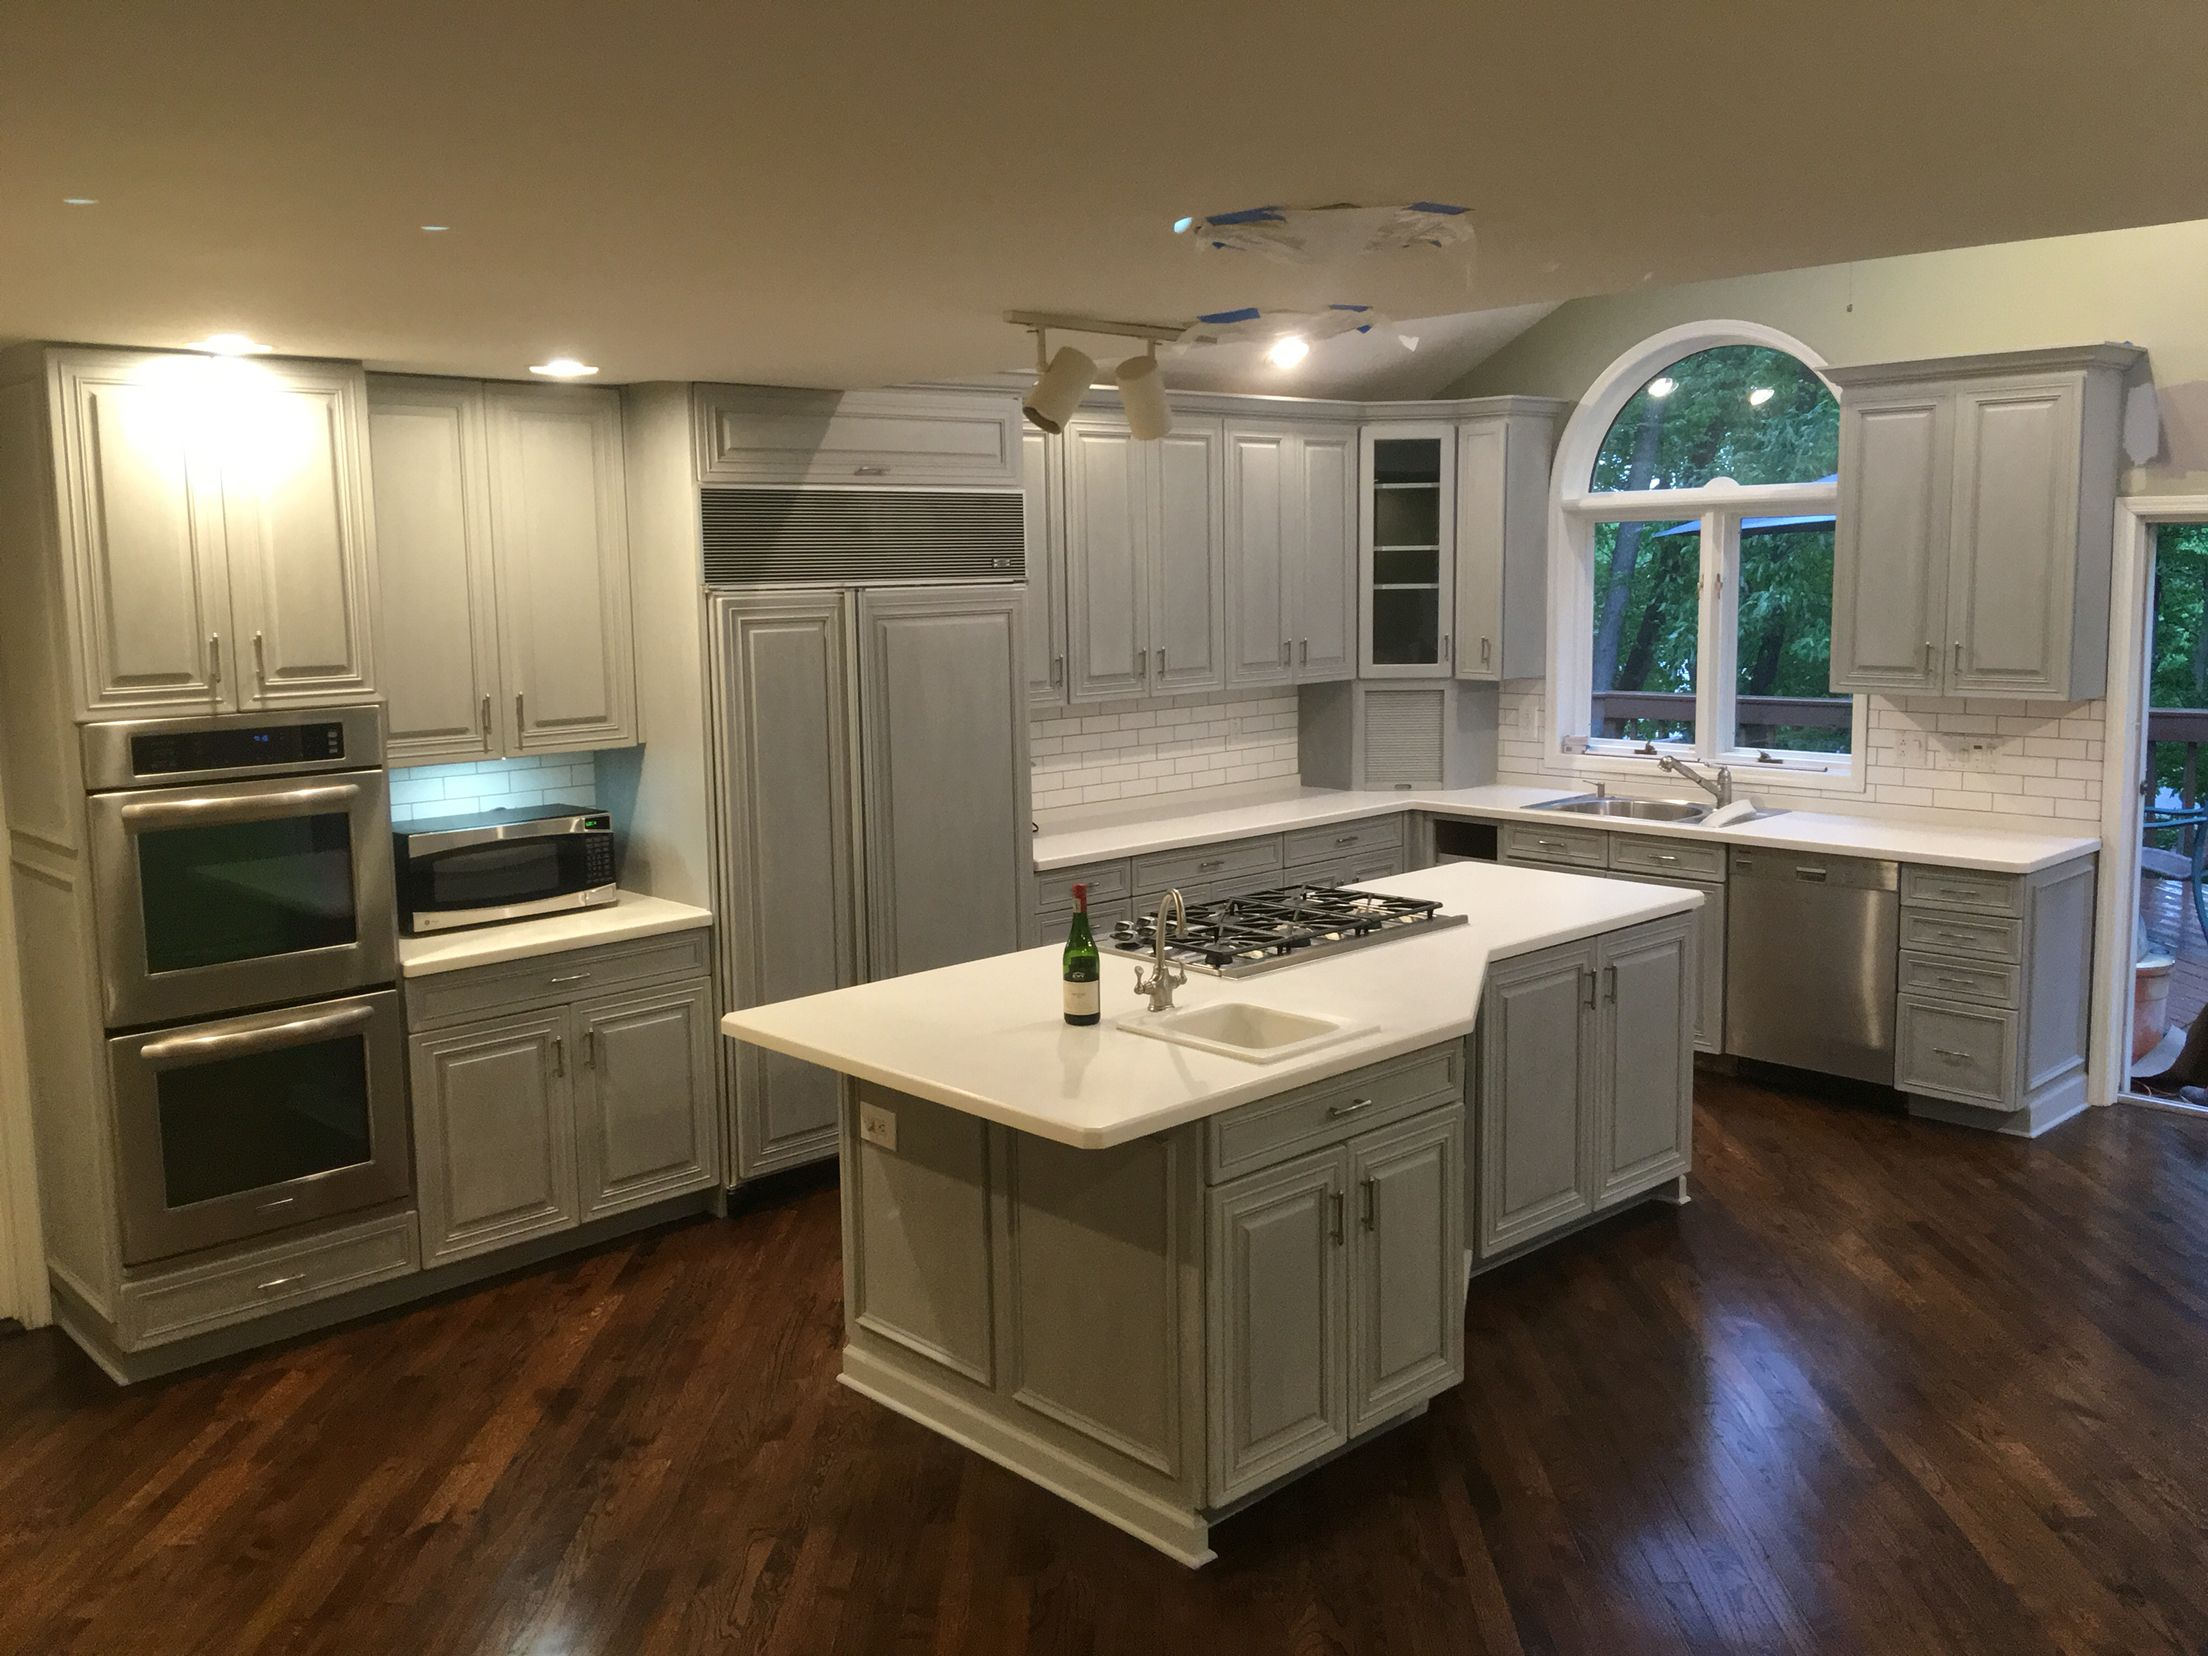 Painted kitchen cabinets and remodeled kitchen follow my ...